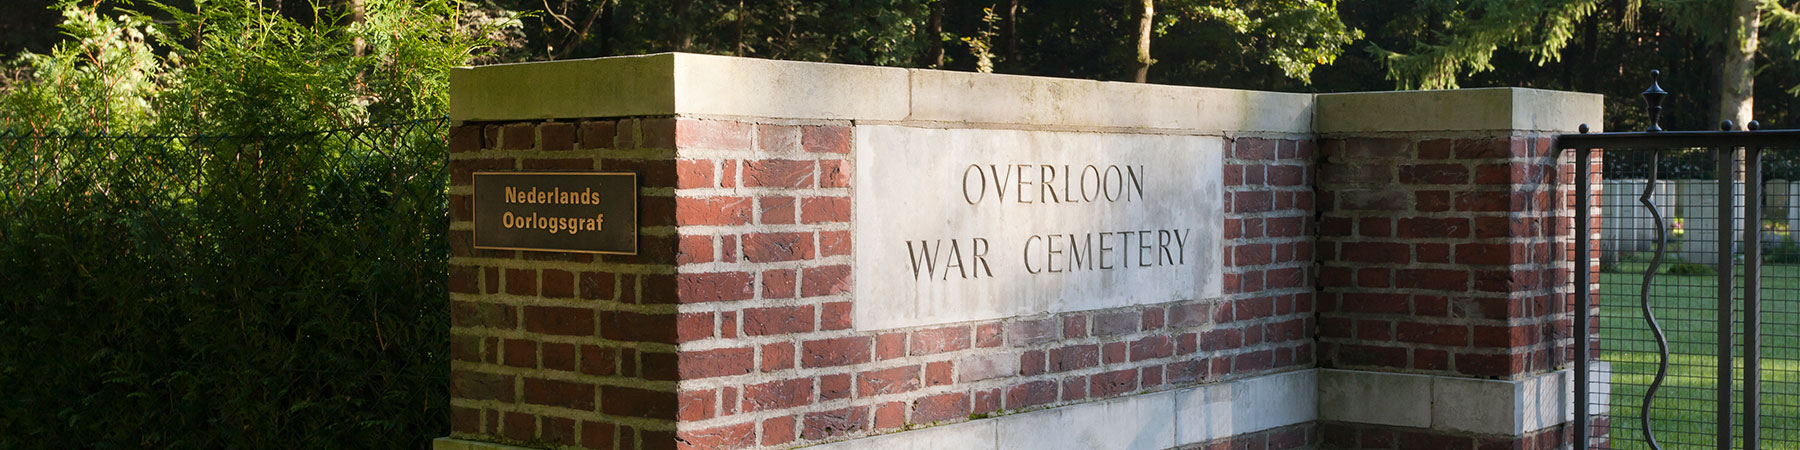 war-cemetery-overloon1